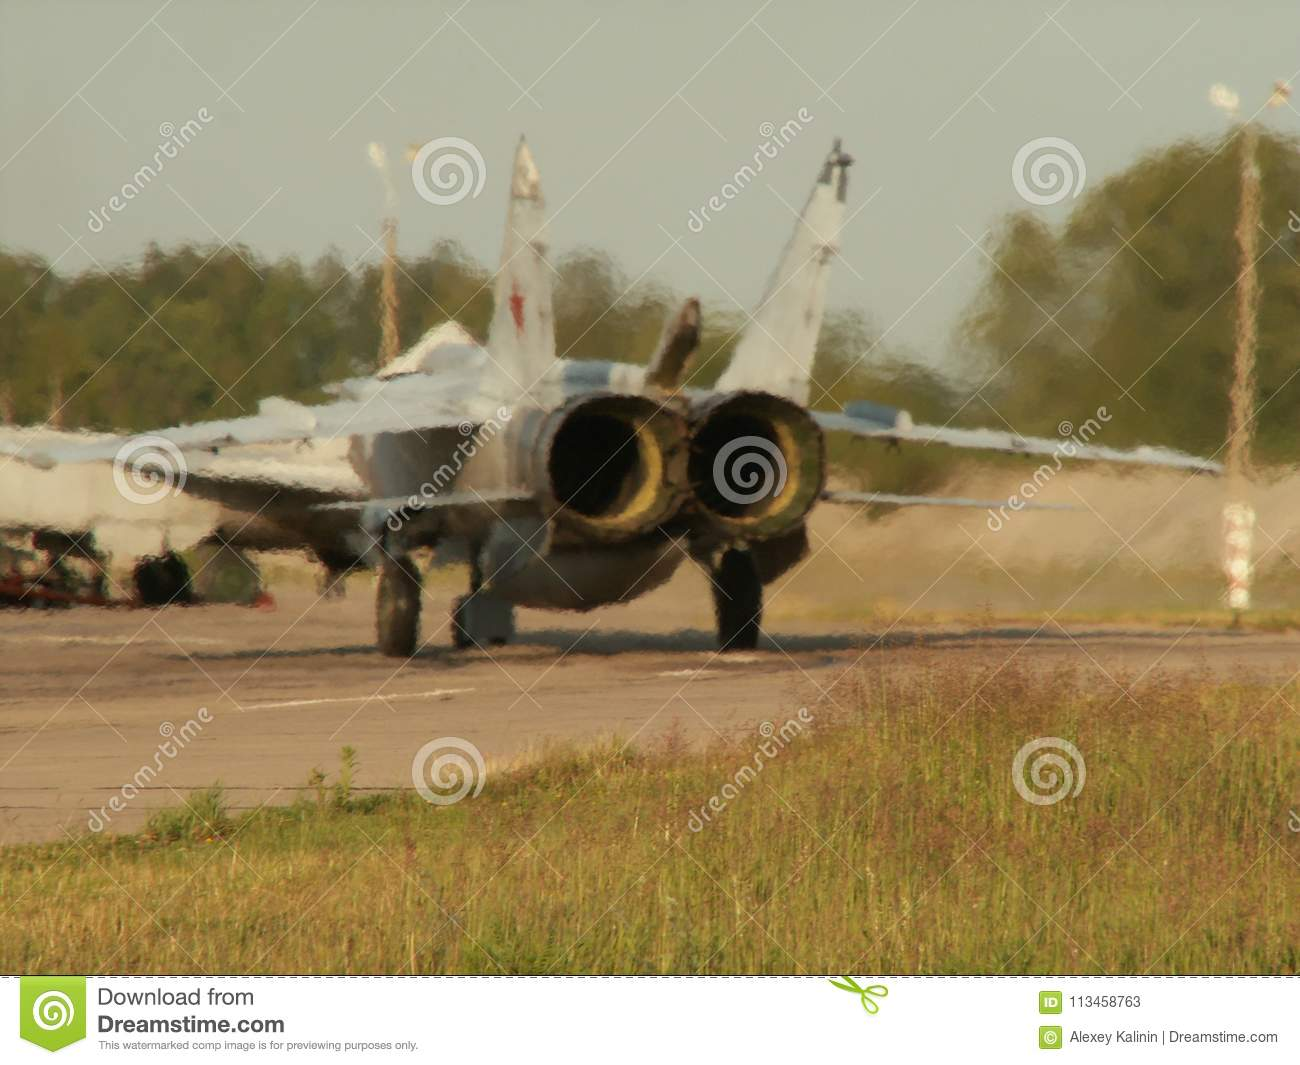 Russian Aircraft Sukhoi Su-24 Running On The Takeoff Strip